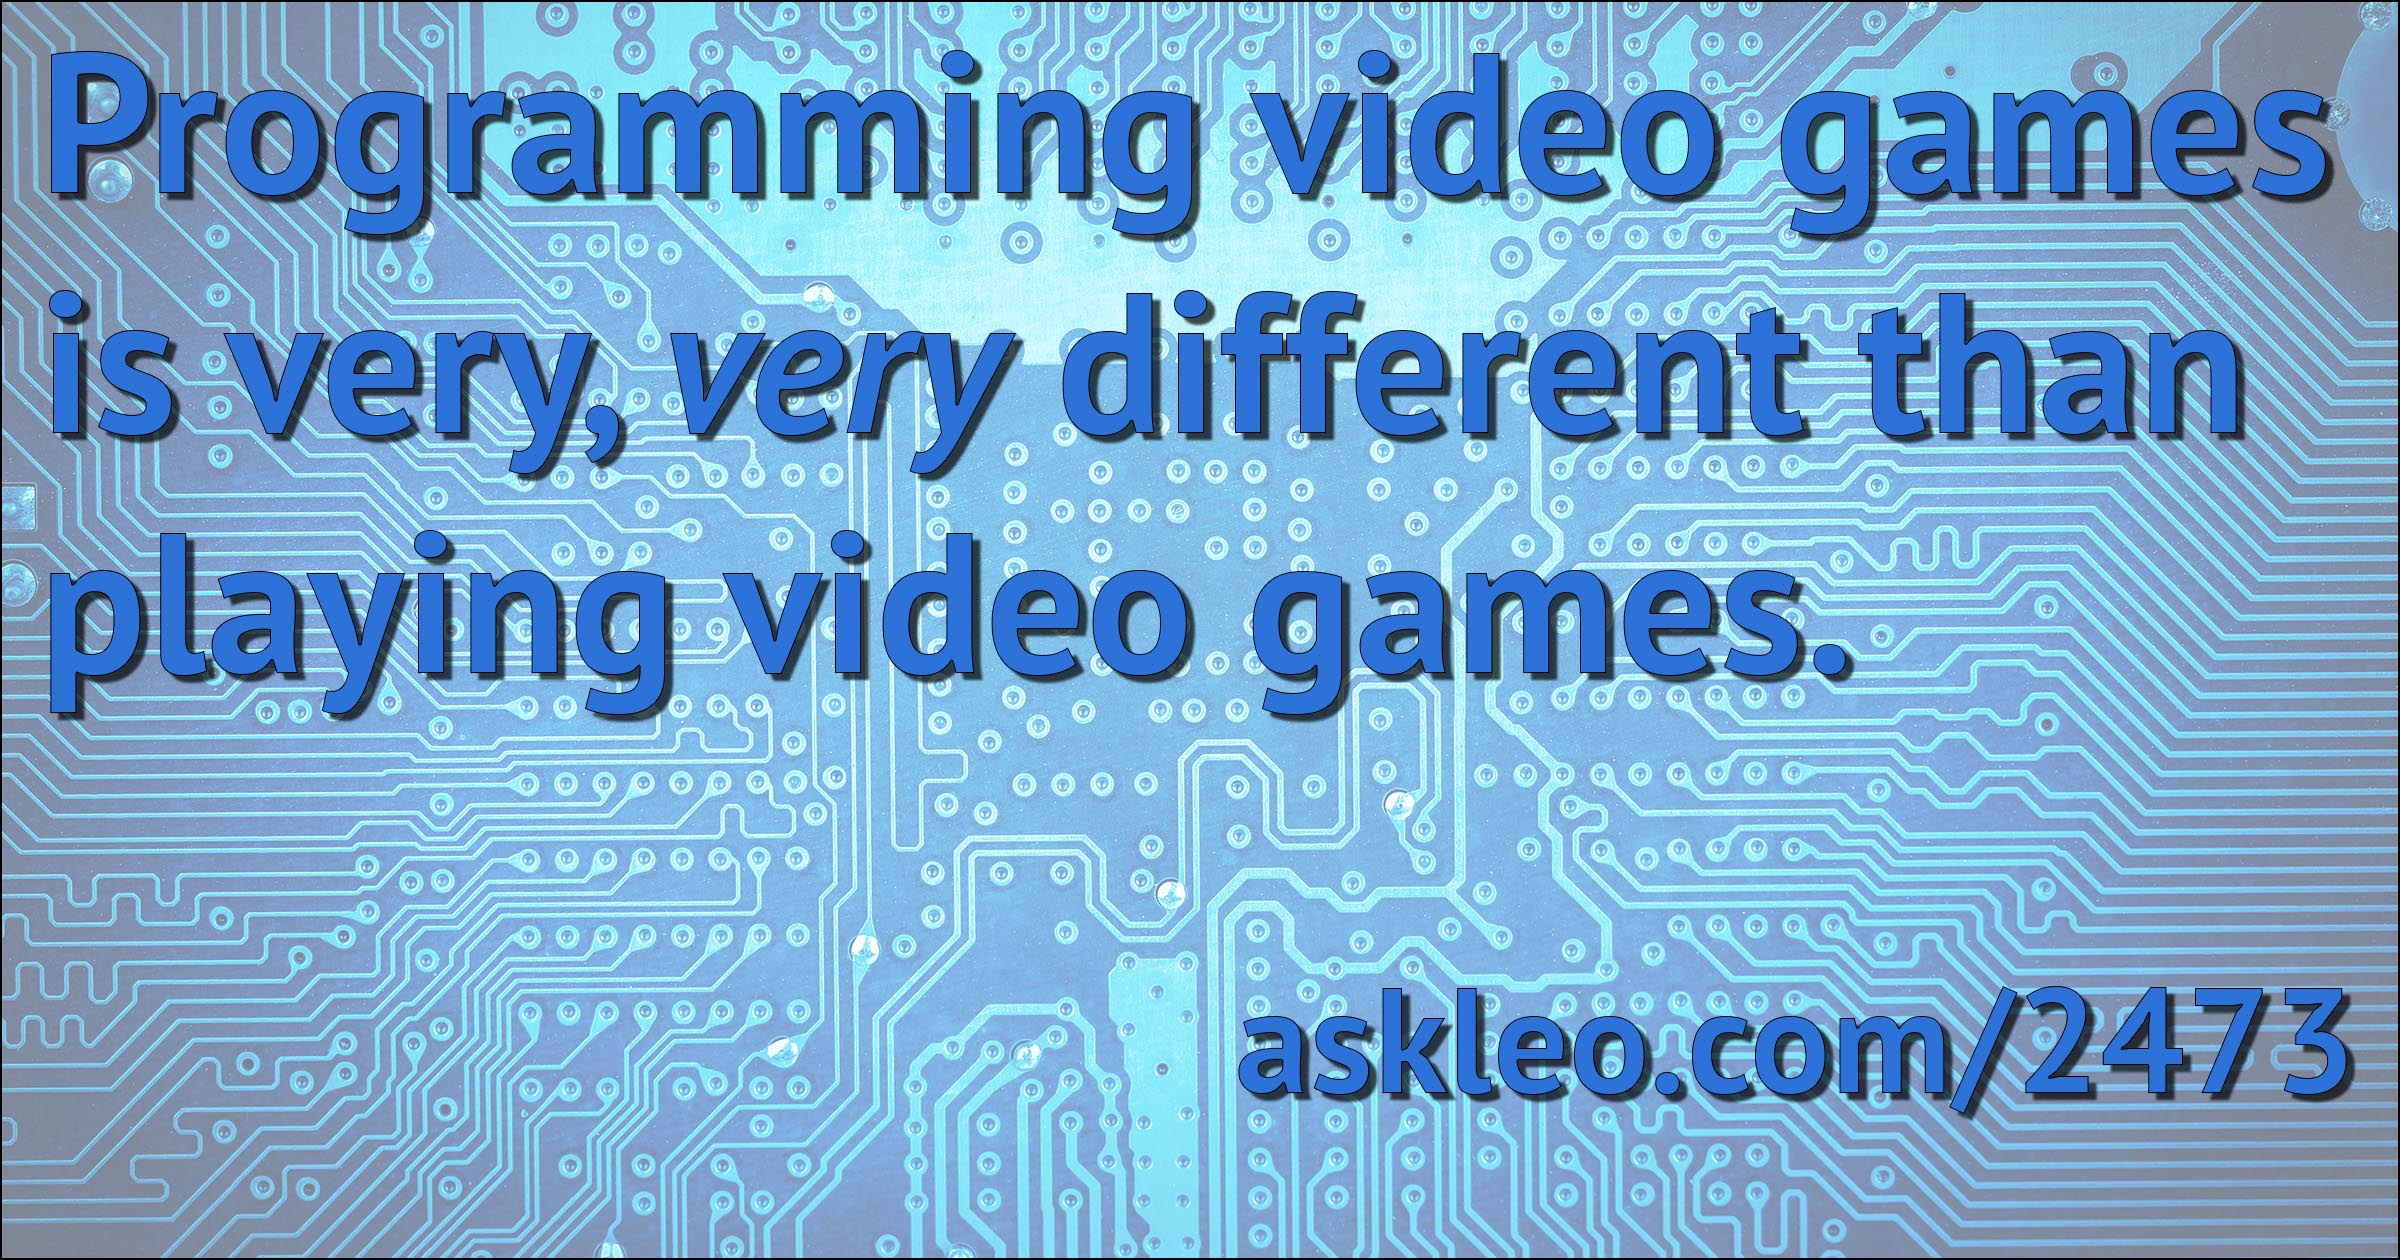 Programming video games is very different...